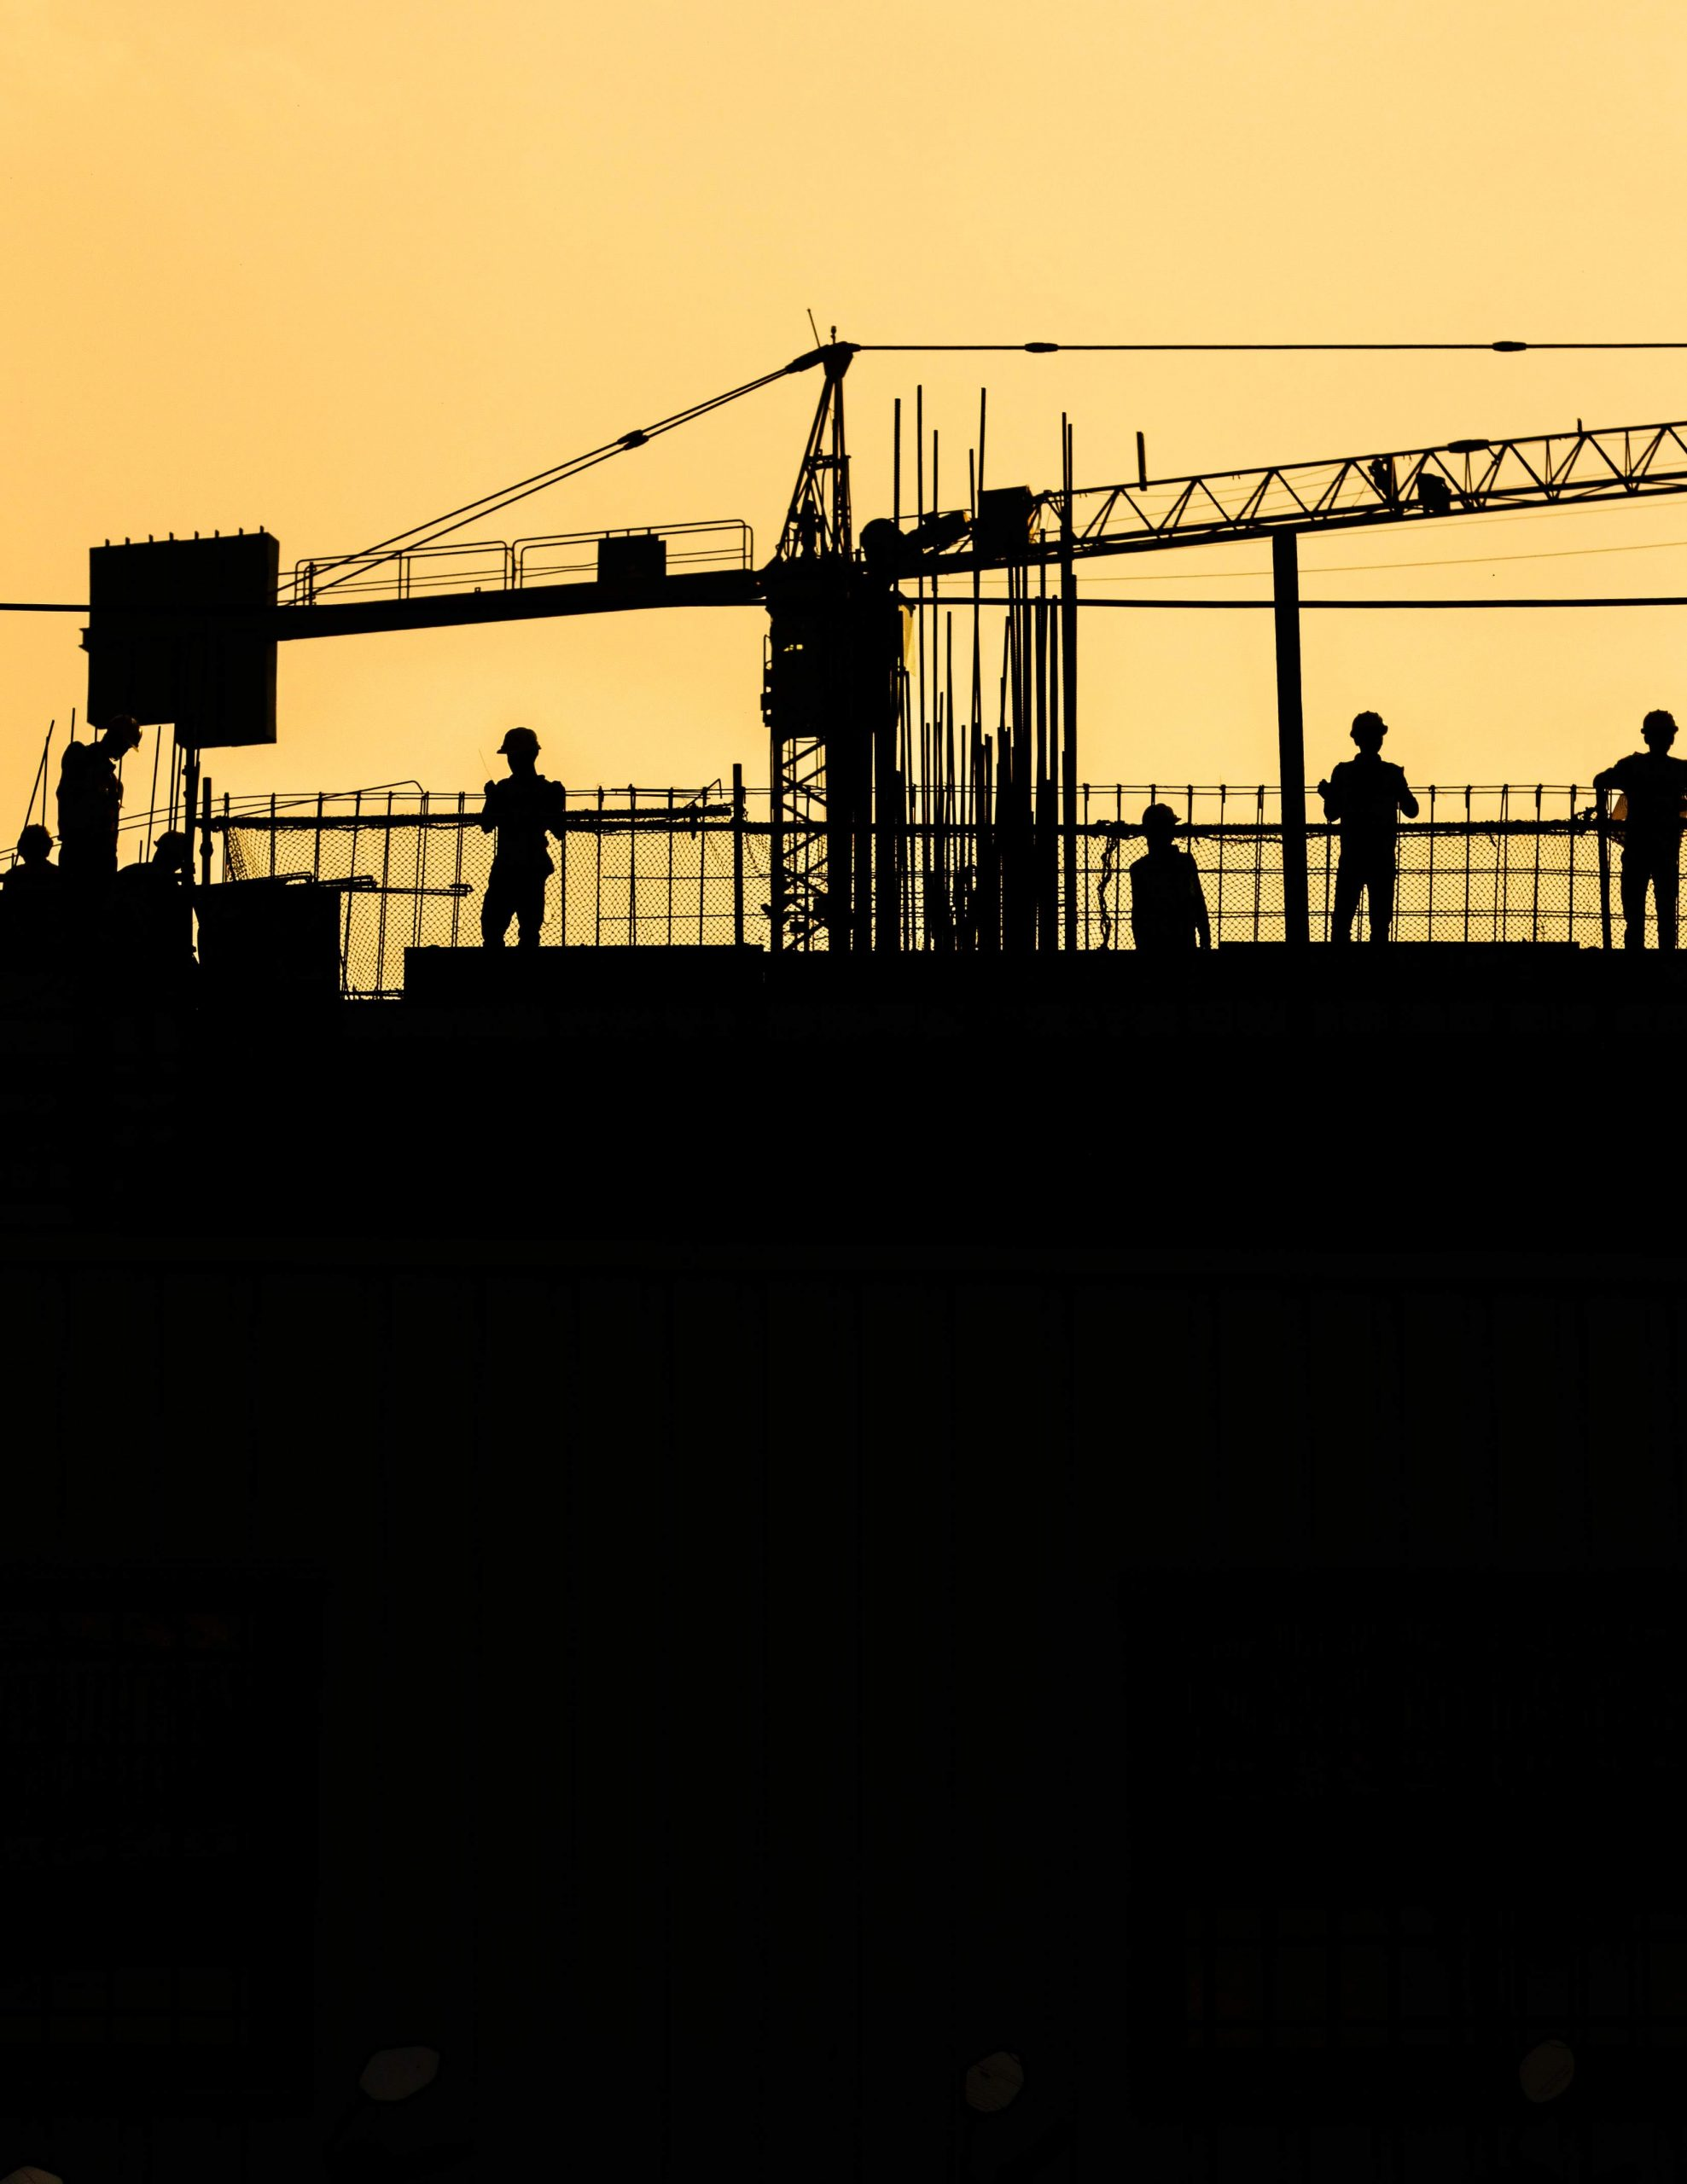 Construction workers silhouetted at sunset